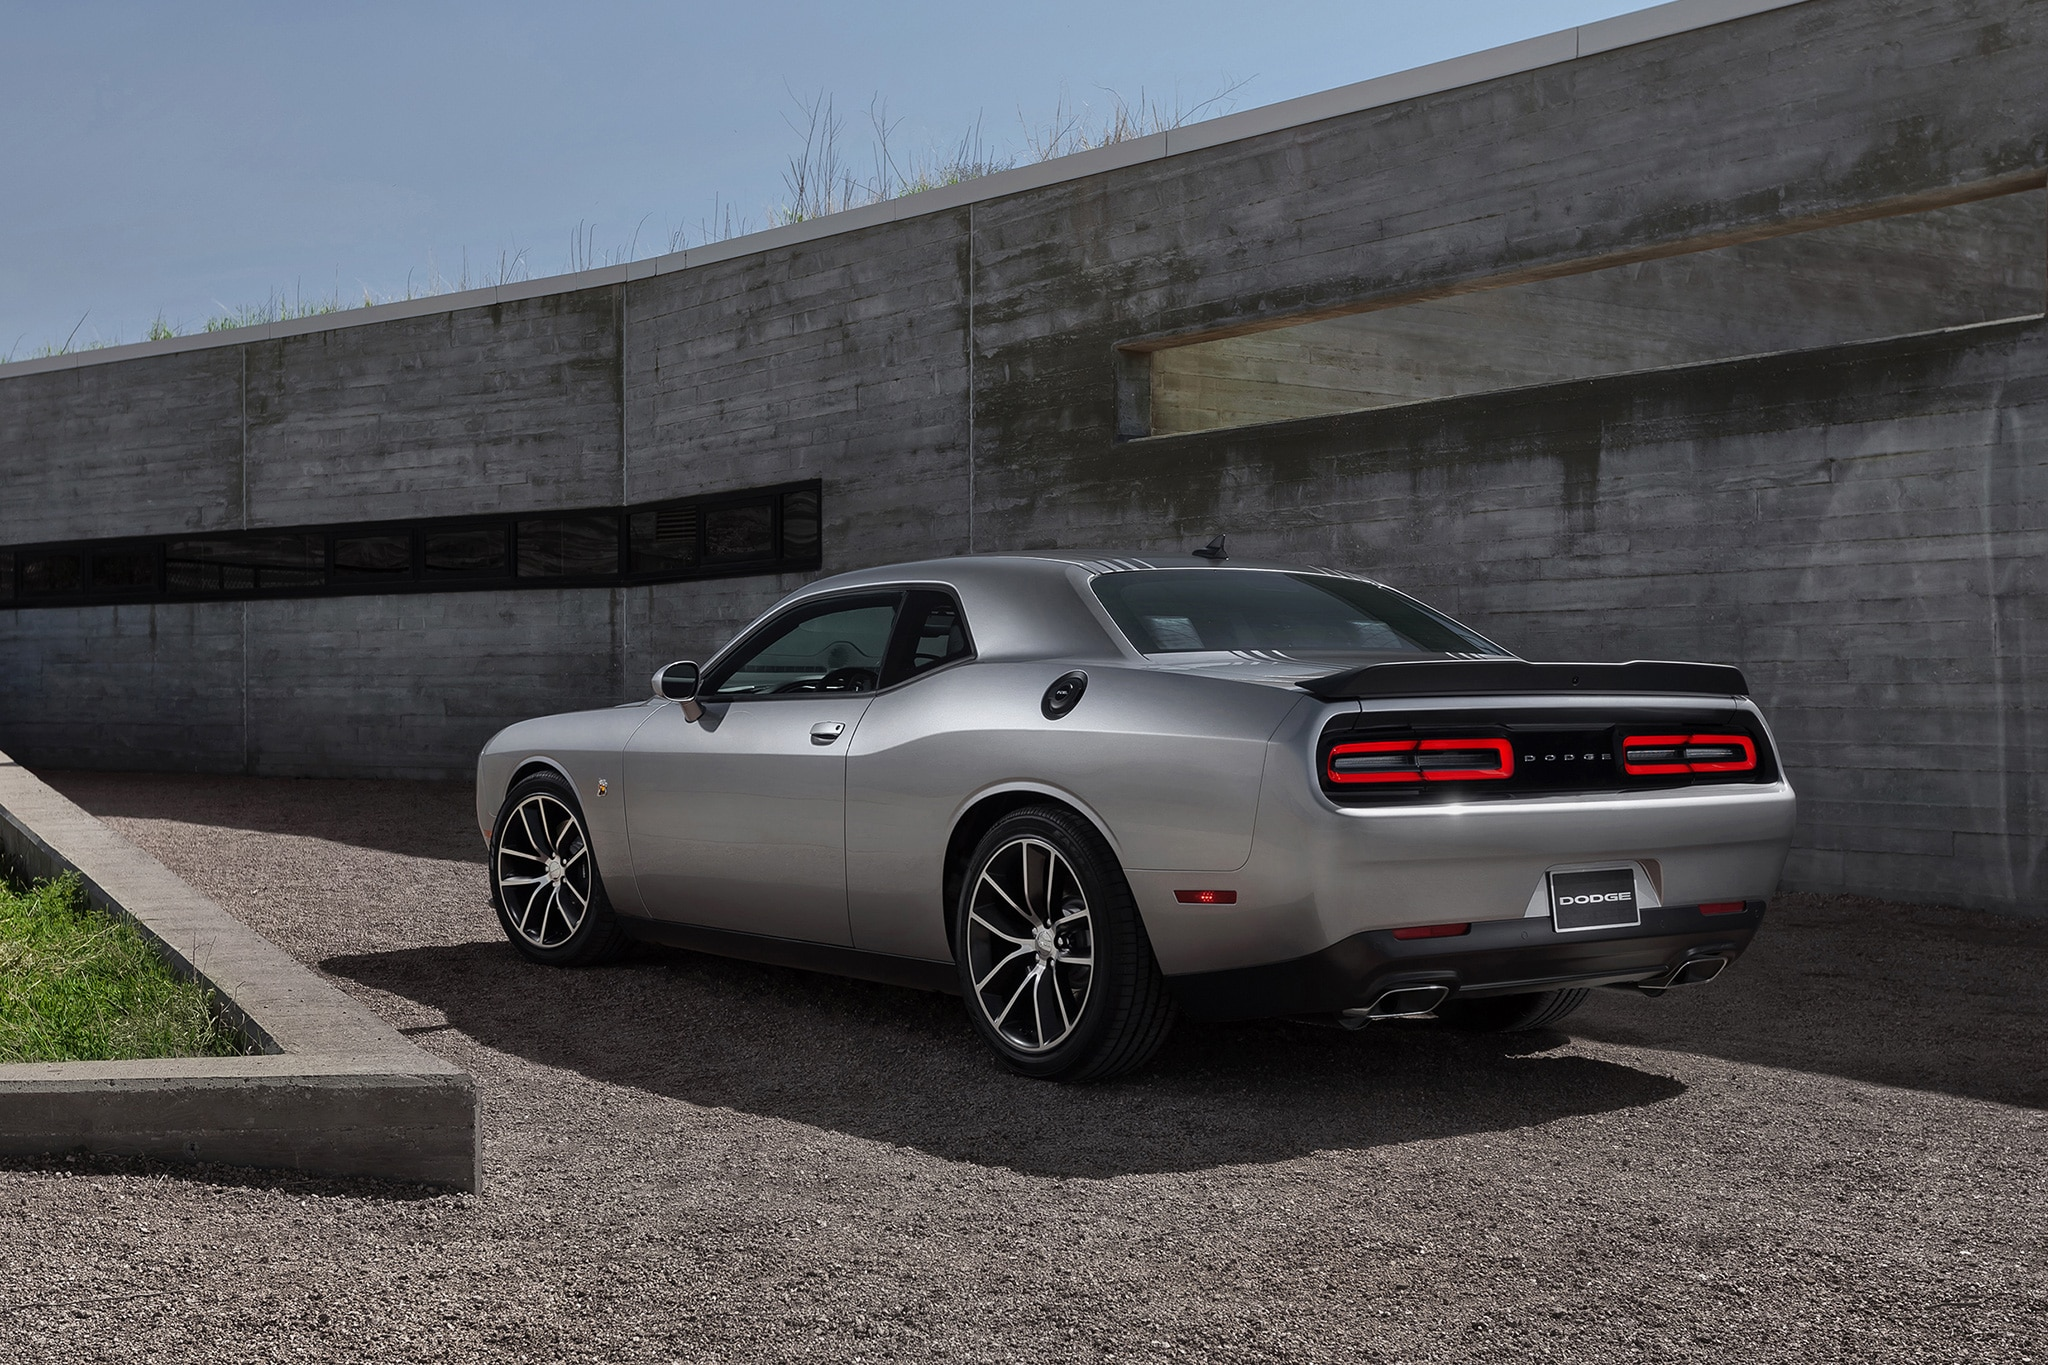 2017 Dodge Charger Daytona 392 >> 2017 Dodge Challenger T/A and Charger Daytona Add Retro